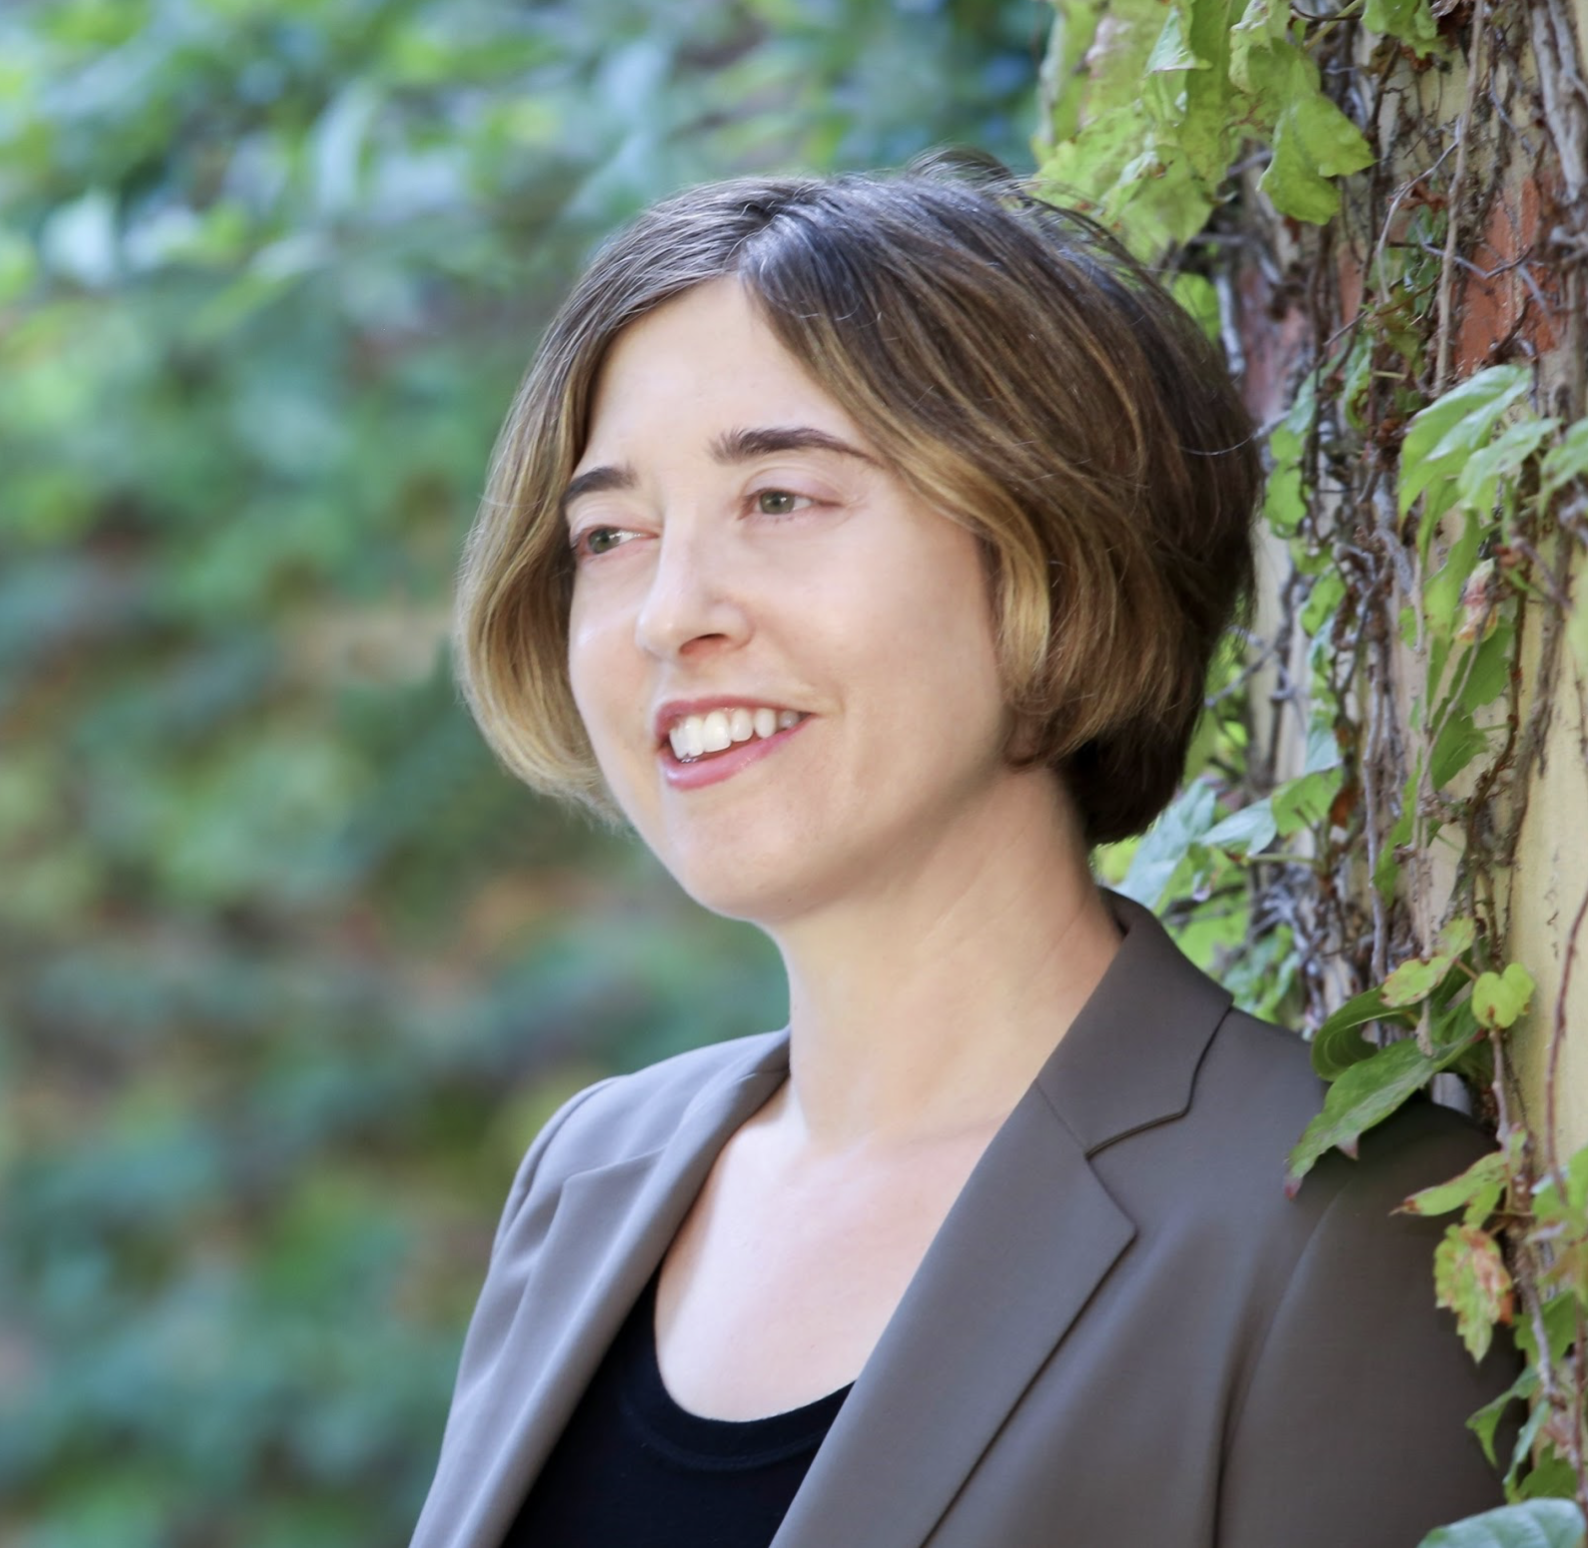 White woman smiling. She is wearing grey blazer and a black shirt. Tree in the background